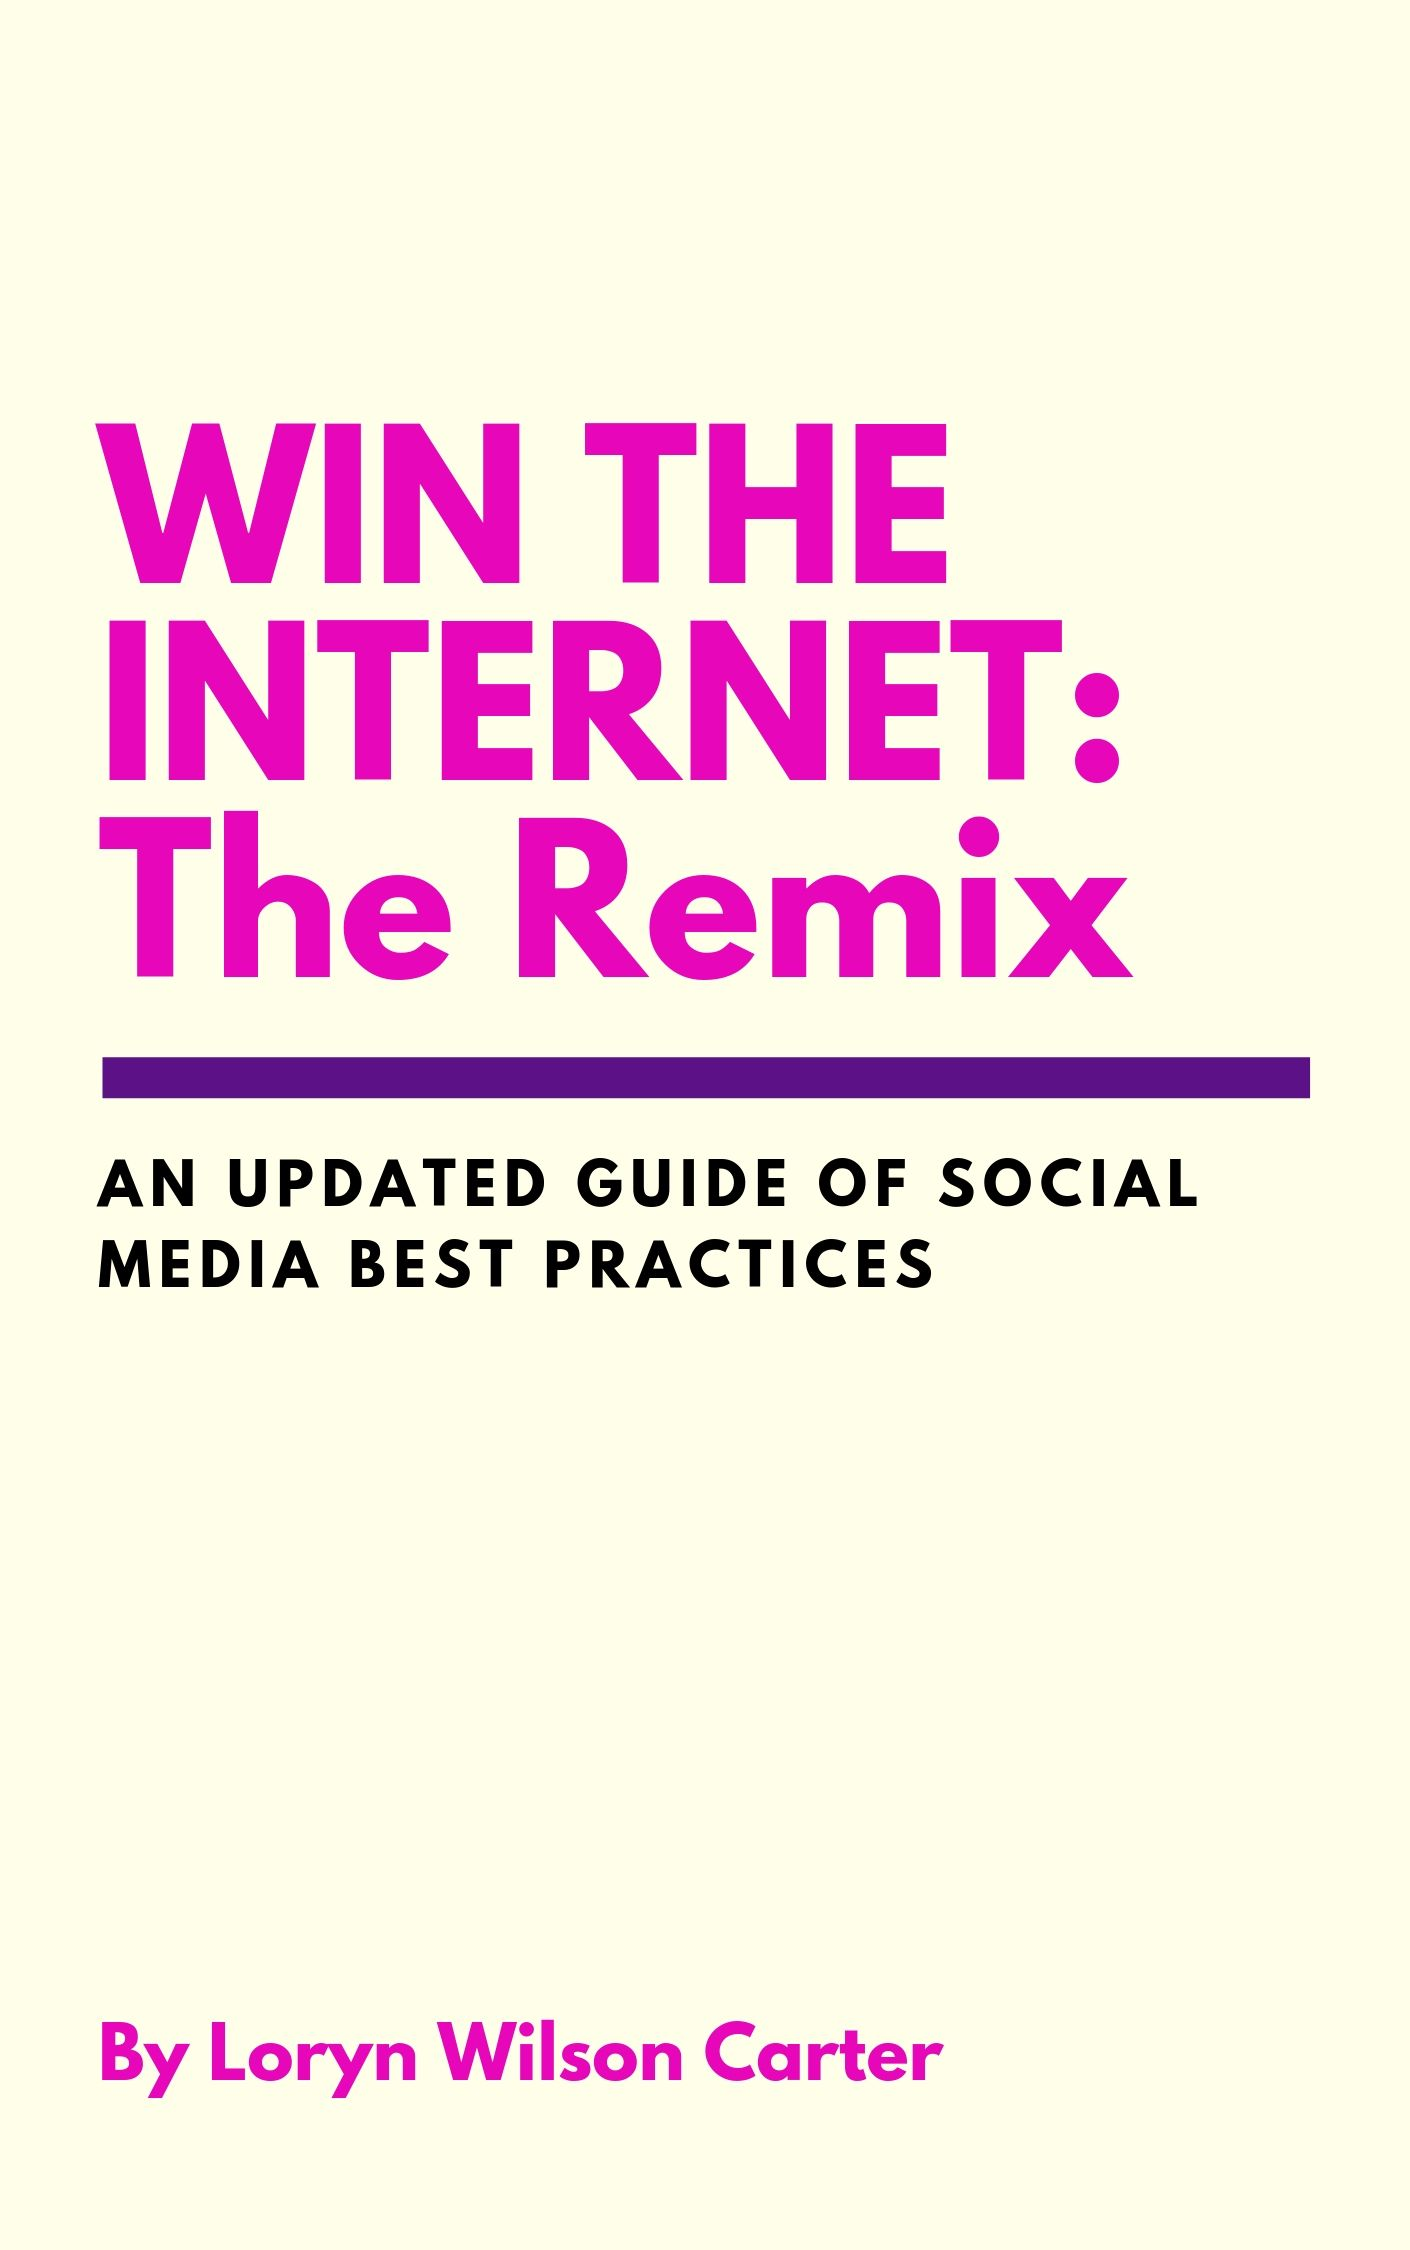 WinTheInternet Cover.jpg